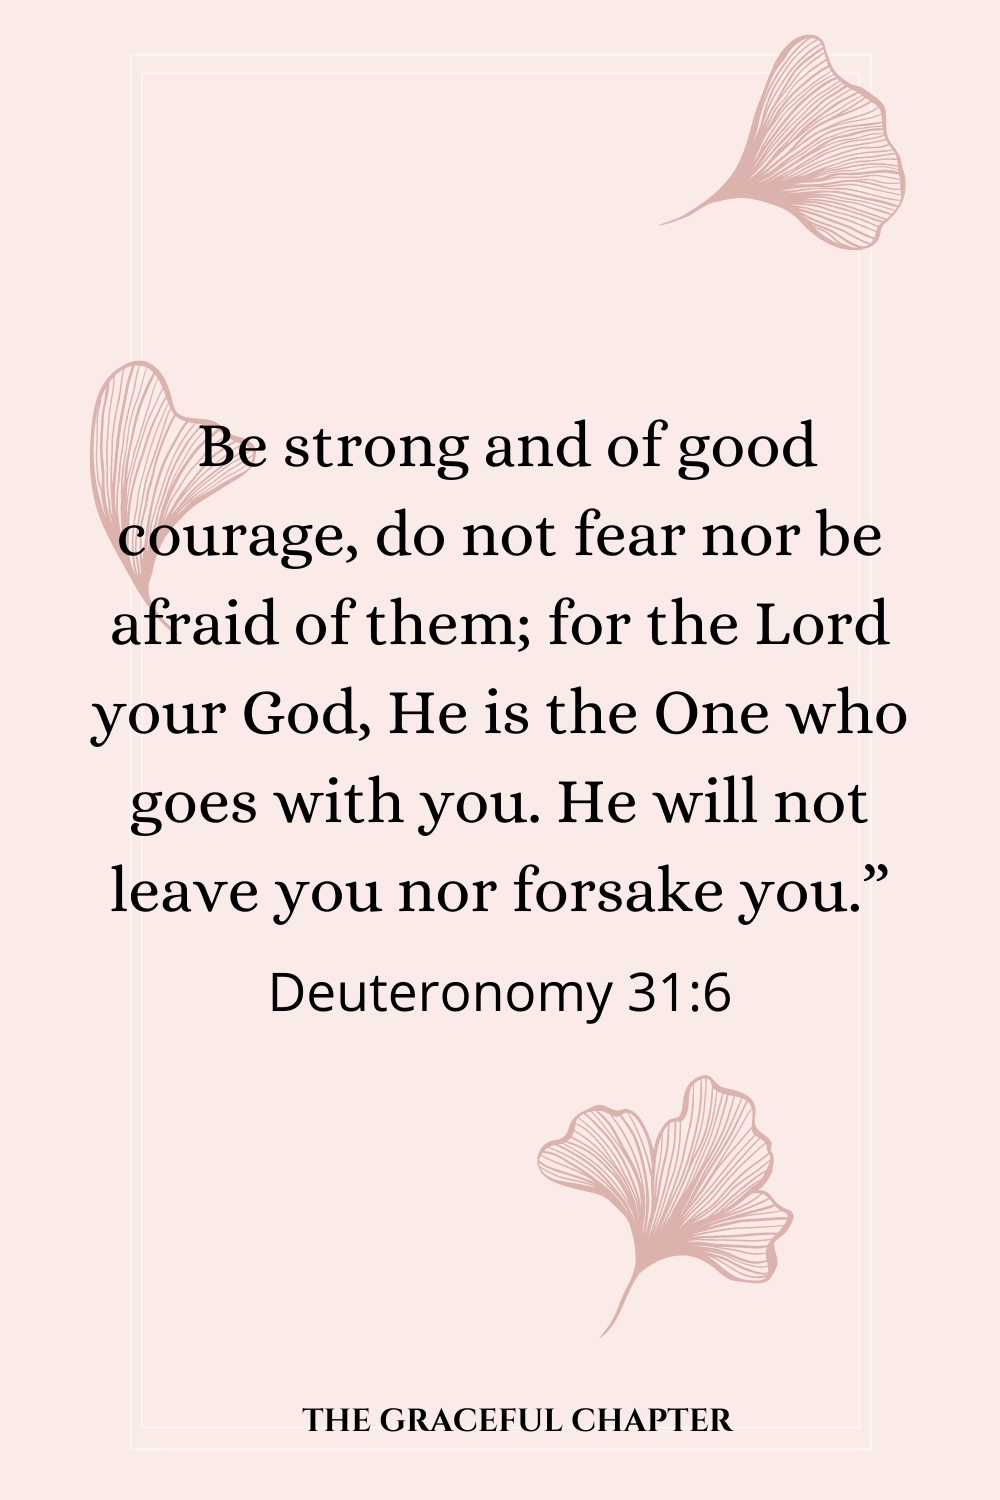 """Be strong and of good courage, do not fear nor be afraid of them; for the Lord your God, He is the One who goes with you. He will not leave you nor forsake you."""" Deuteronomy 31:6"""